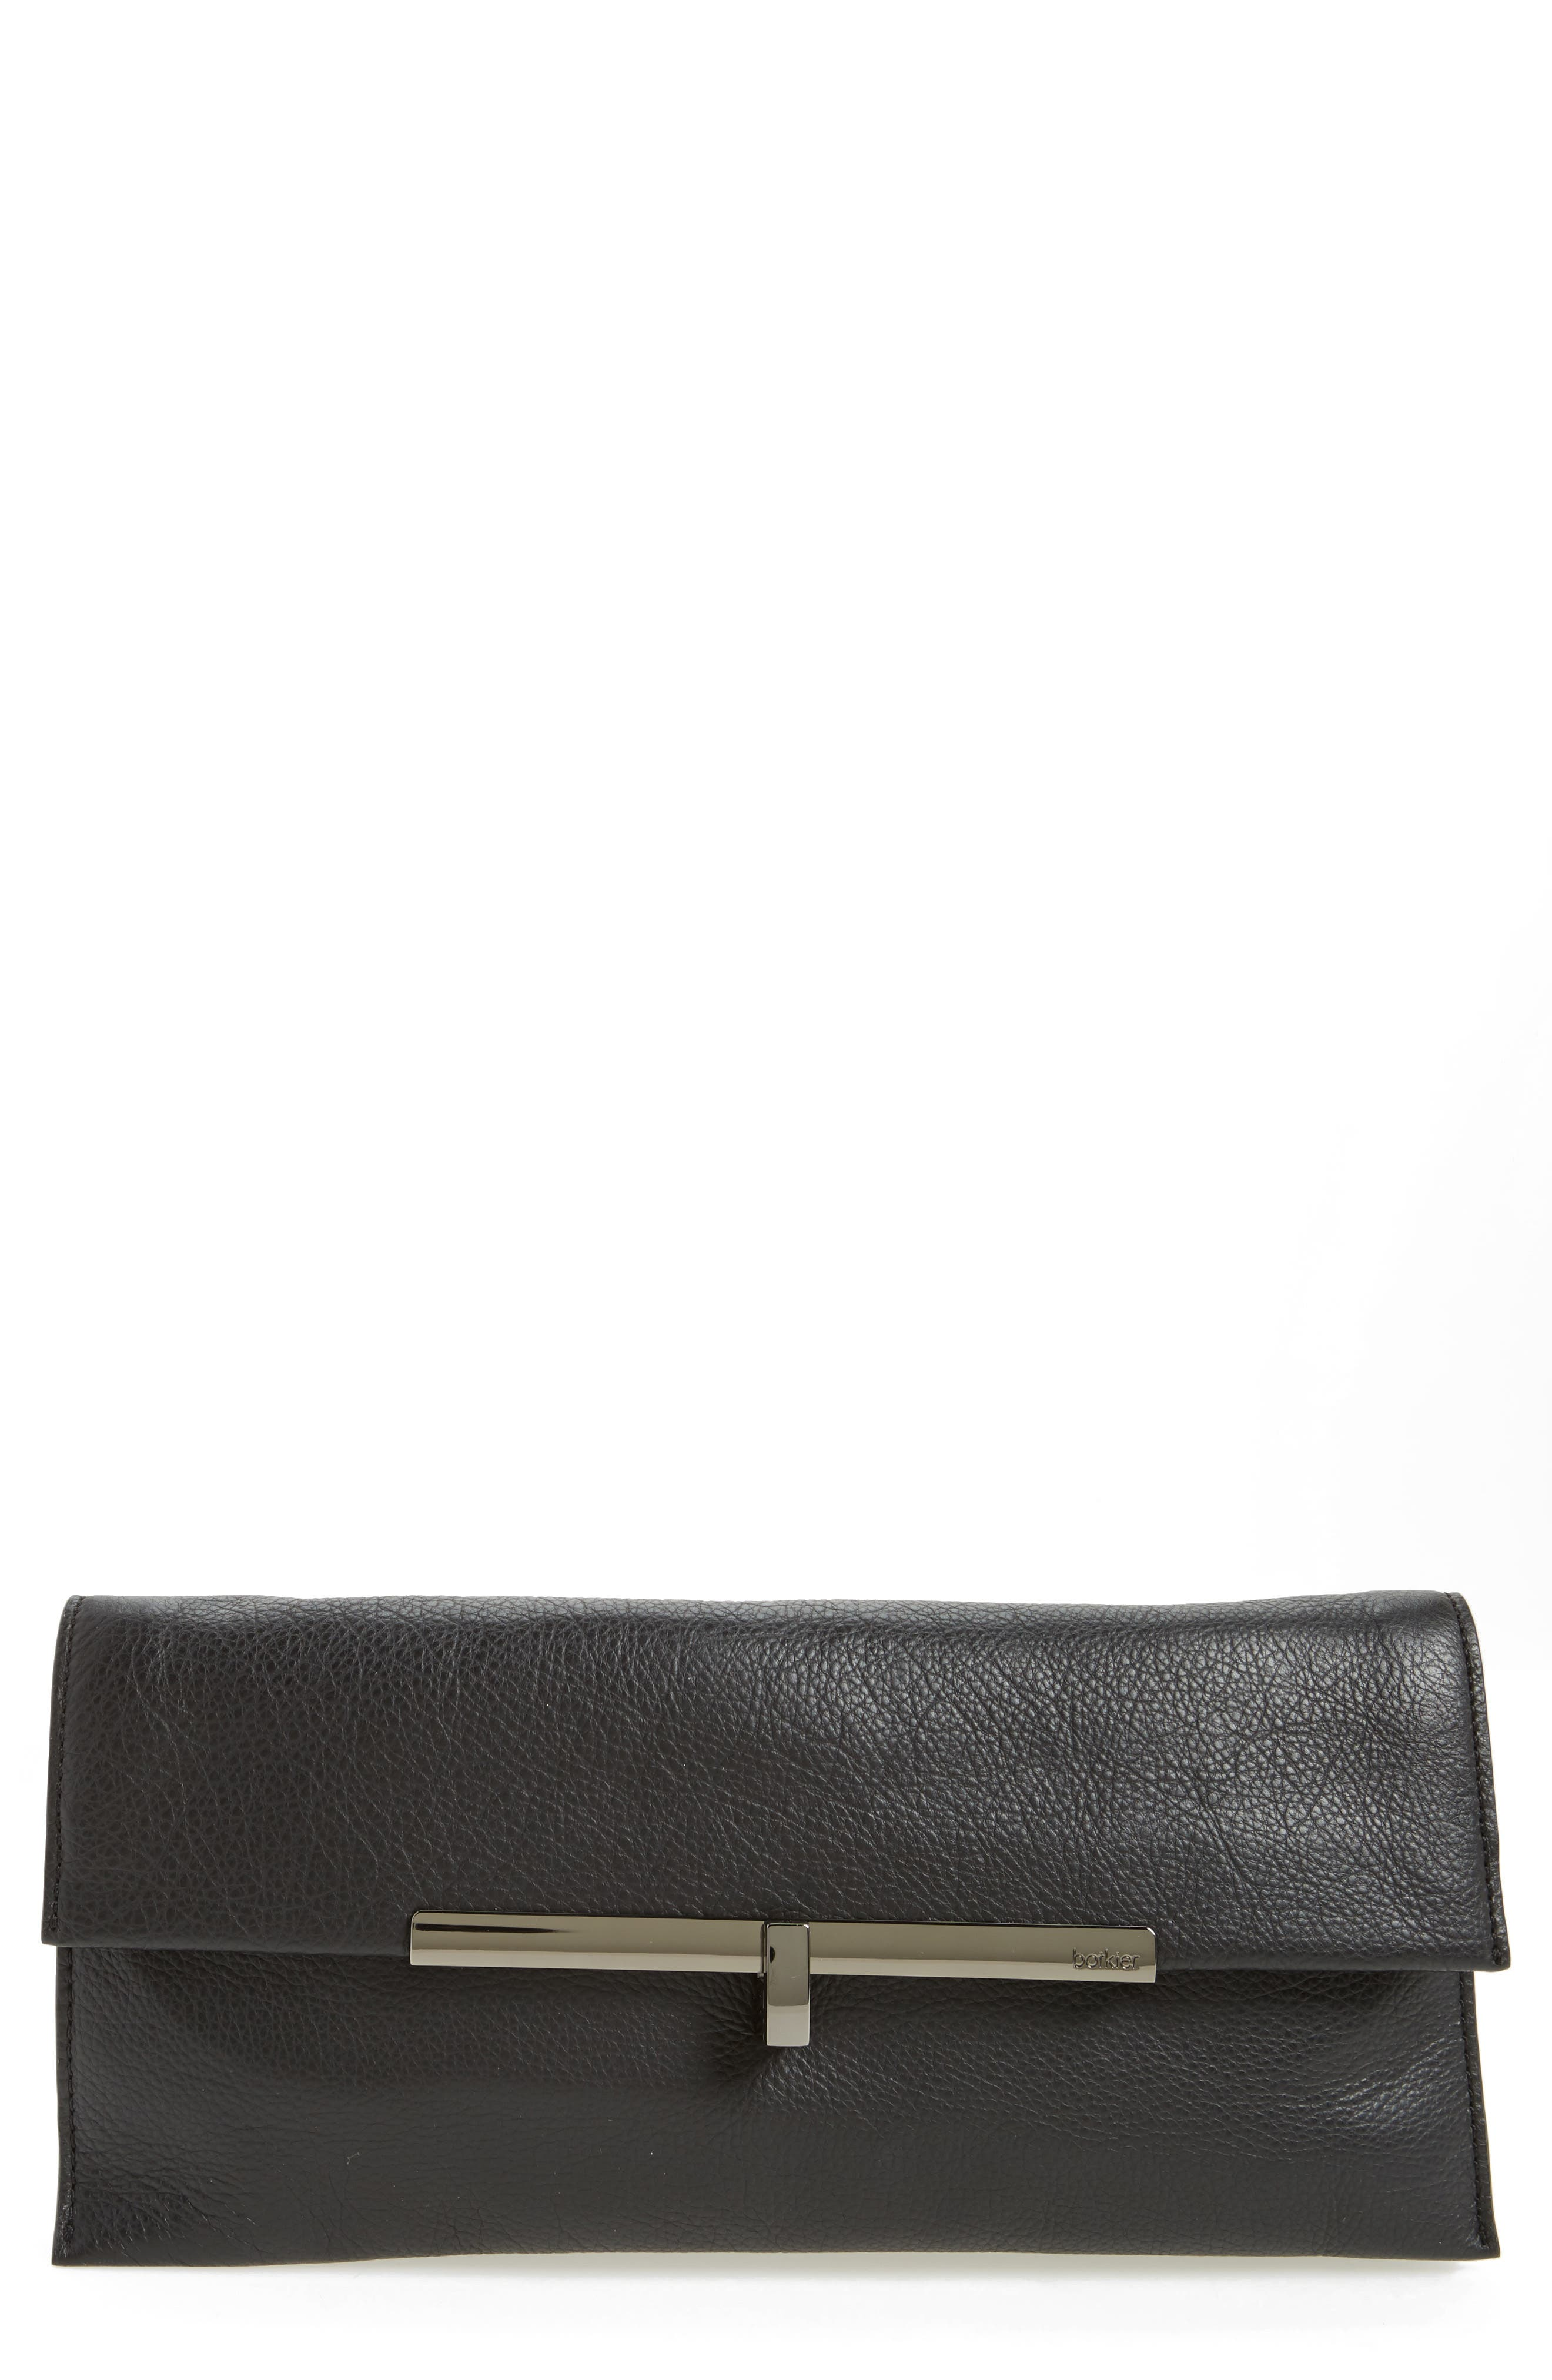 Bleeker Leather Clutch,                         Main,                         color, 004